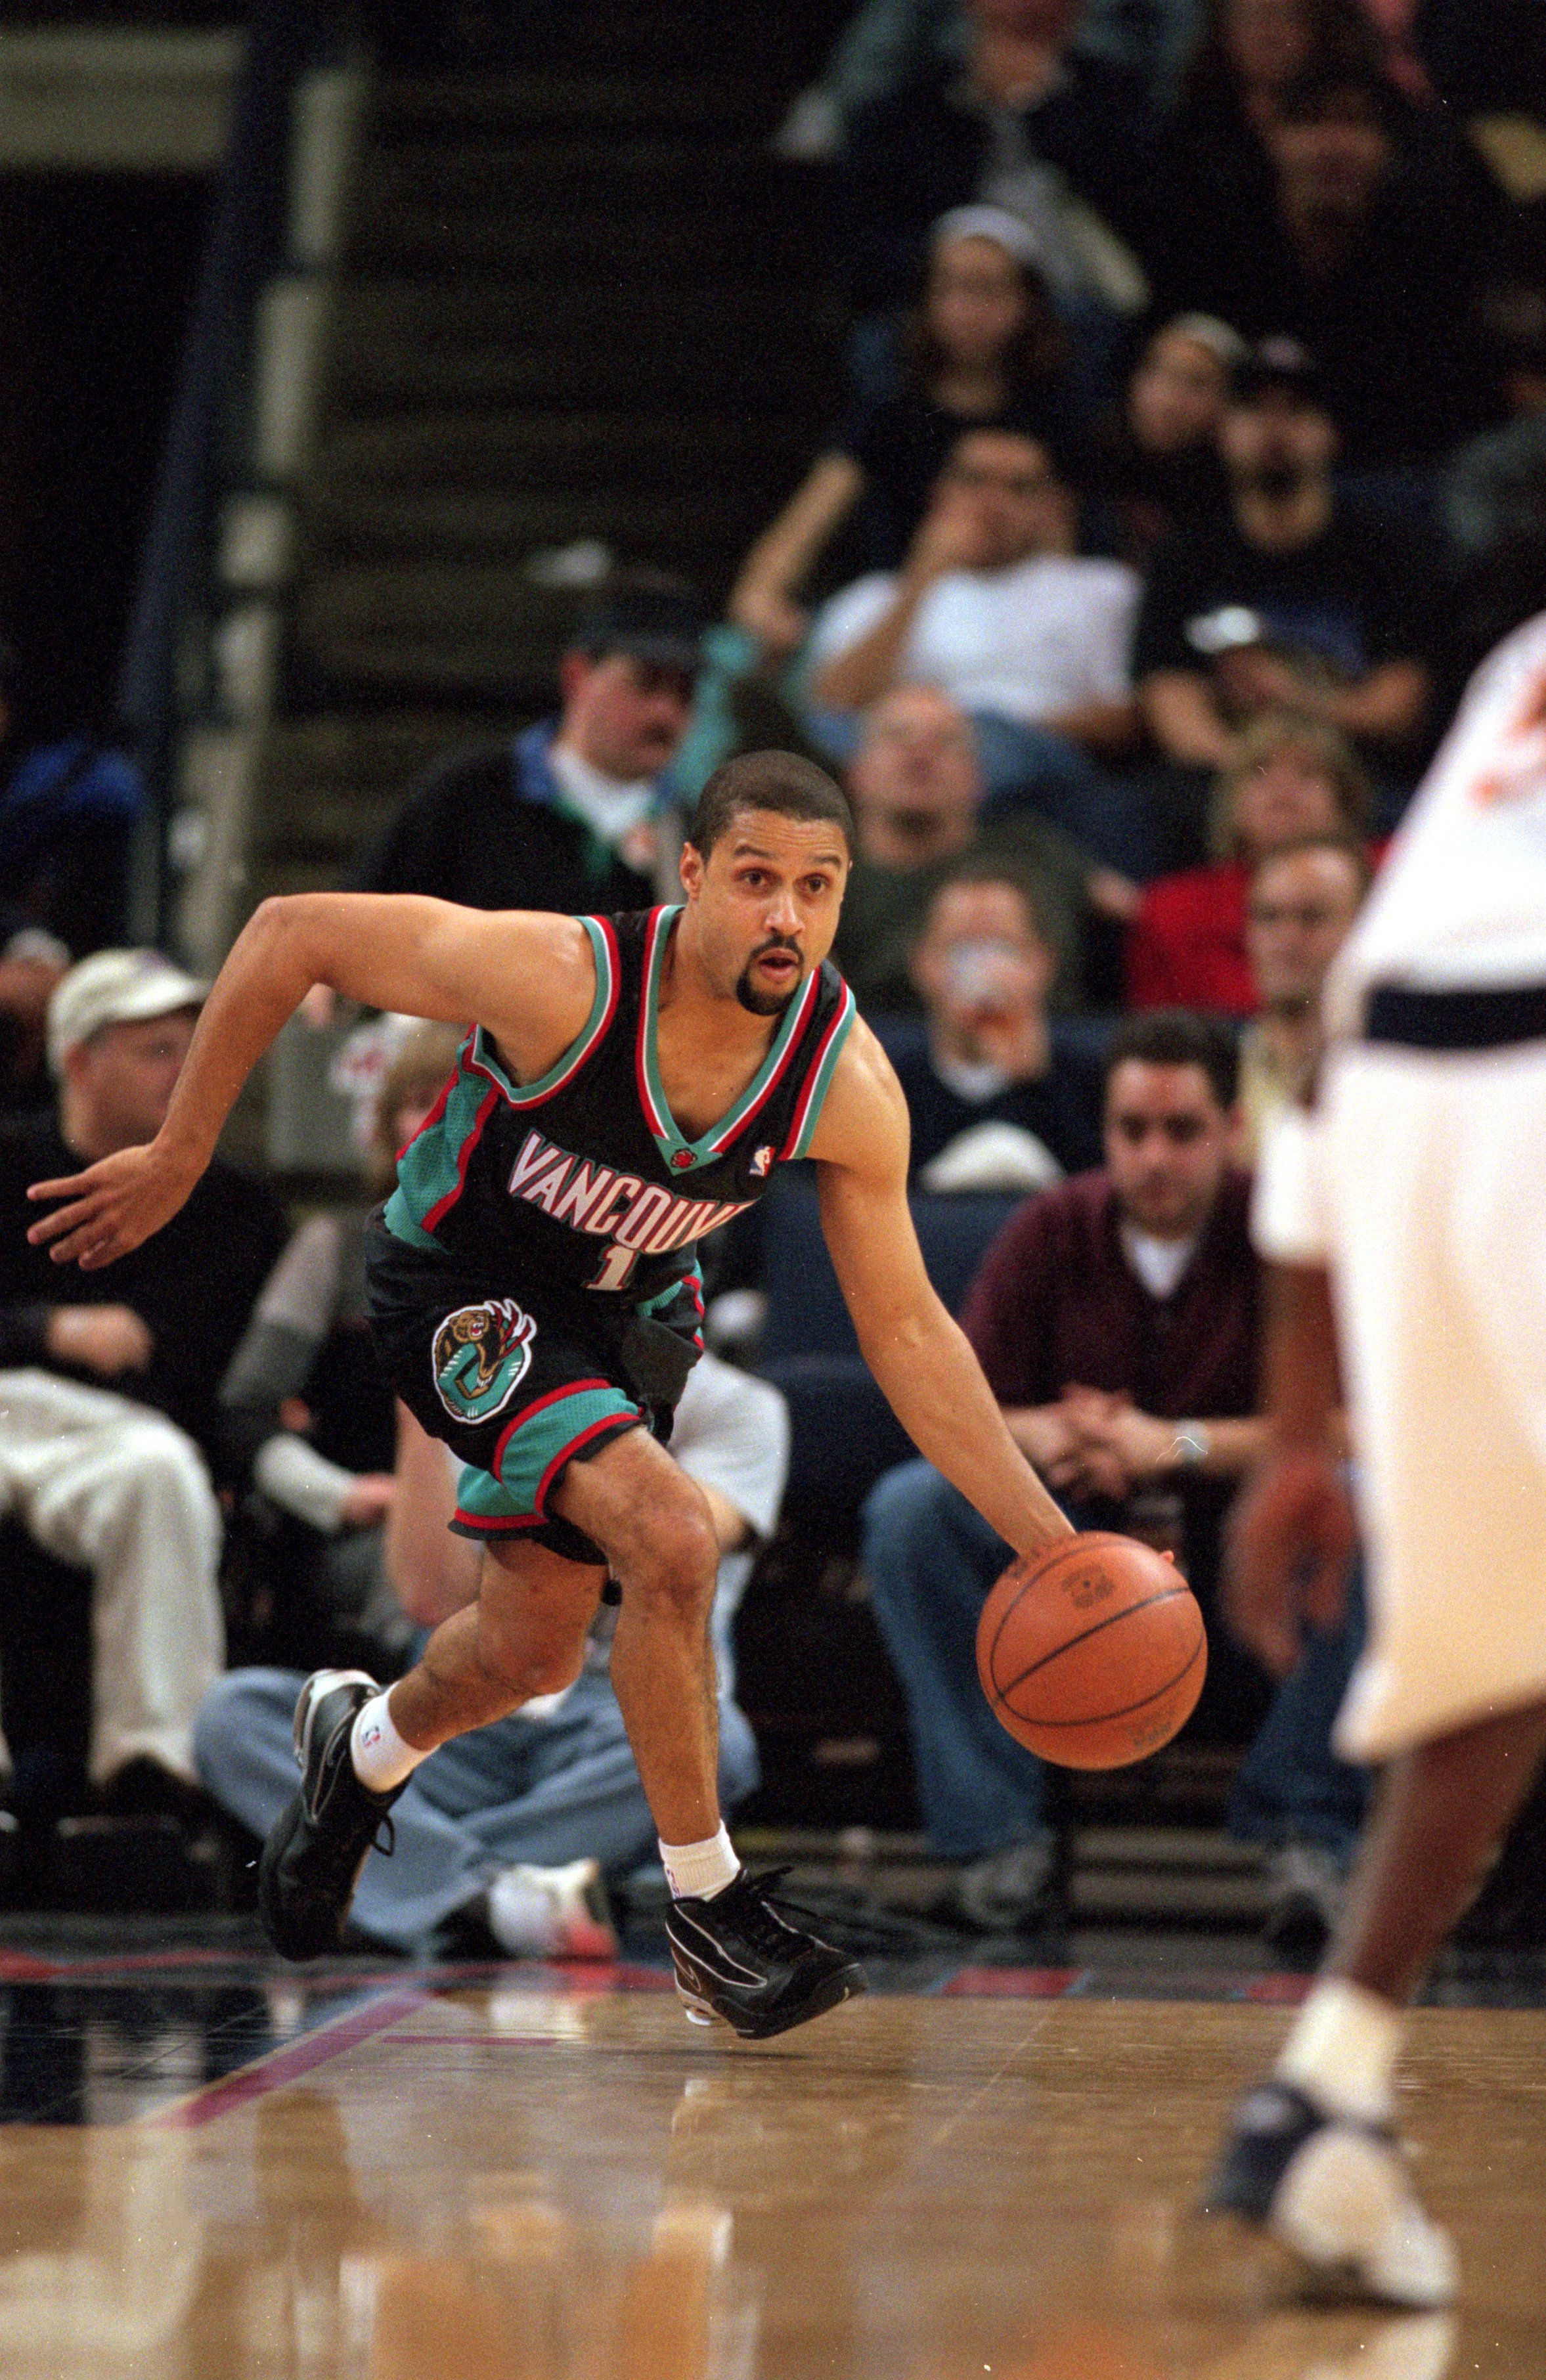 16 Feb 2001:  Mahmoud Abdul-Rauf #1 of the Vancouver Grizzlies runs with the ball during the game against the Golden State Warriors at the Arena in Oakland, California.  The Grizzlies defeated the Warriors 92-79.    NOTE TO USER: It is expressly understoo